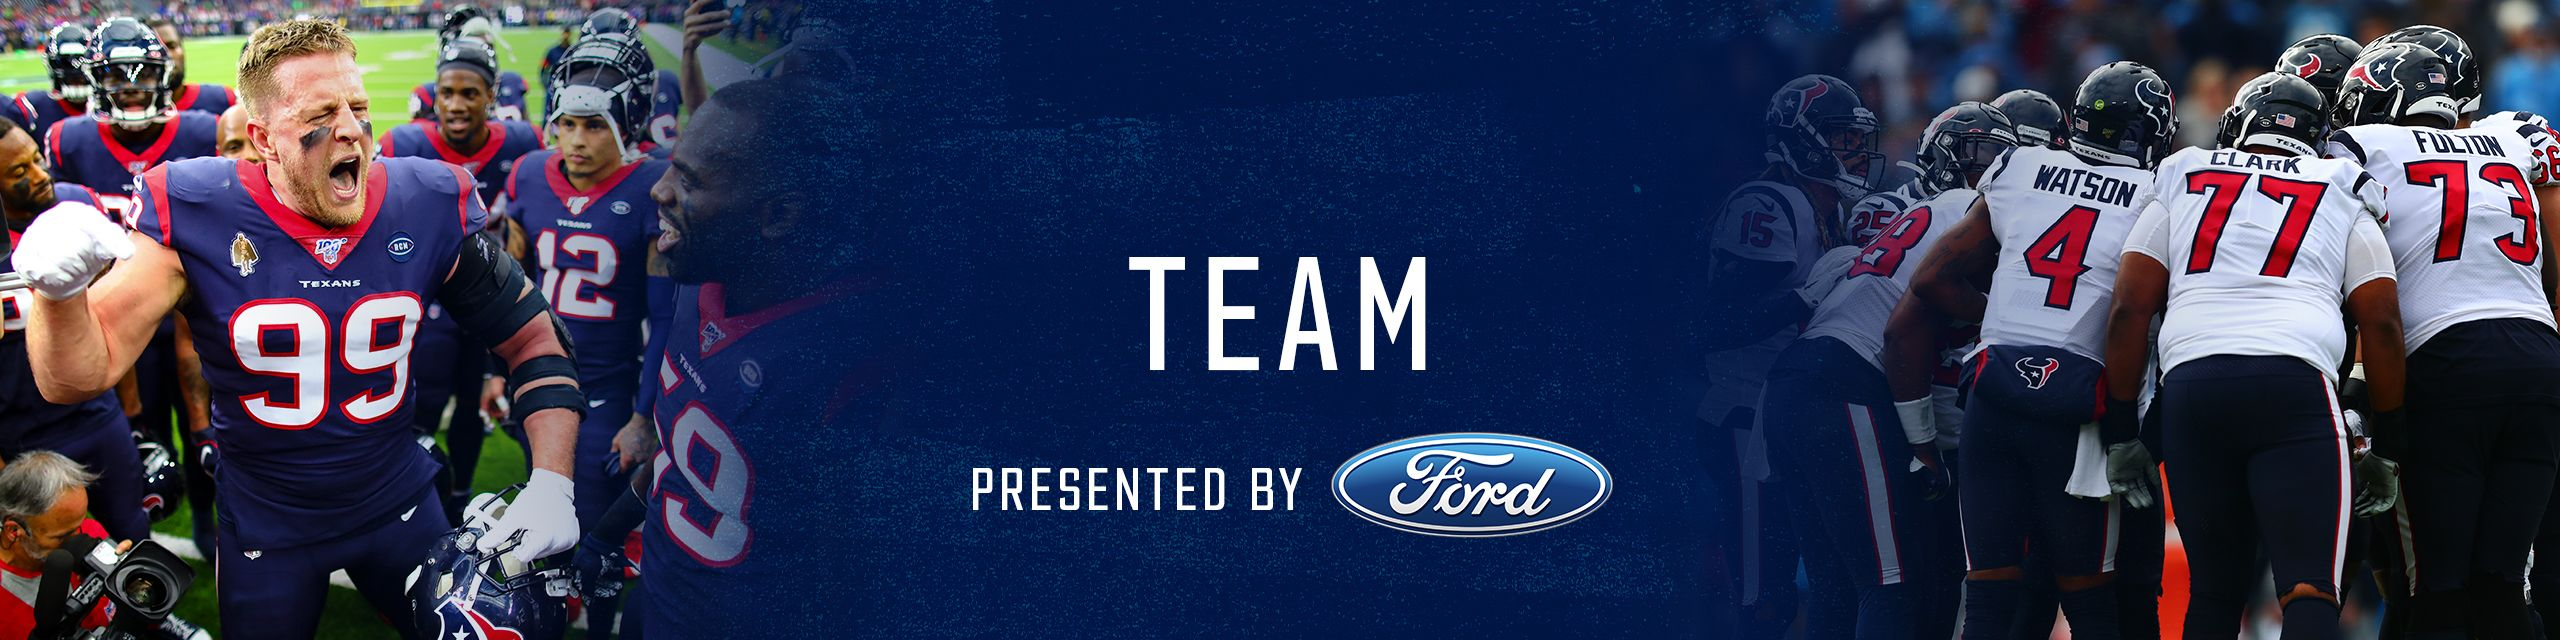 Team. presented by Ford